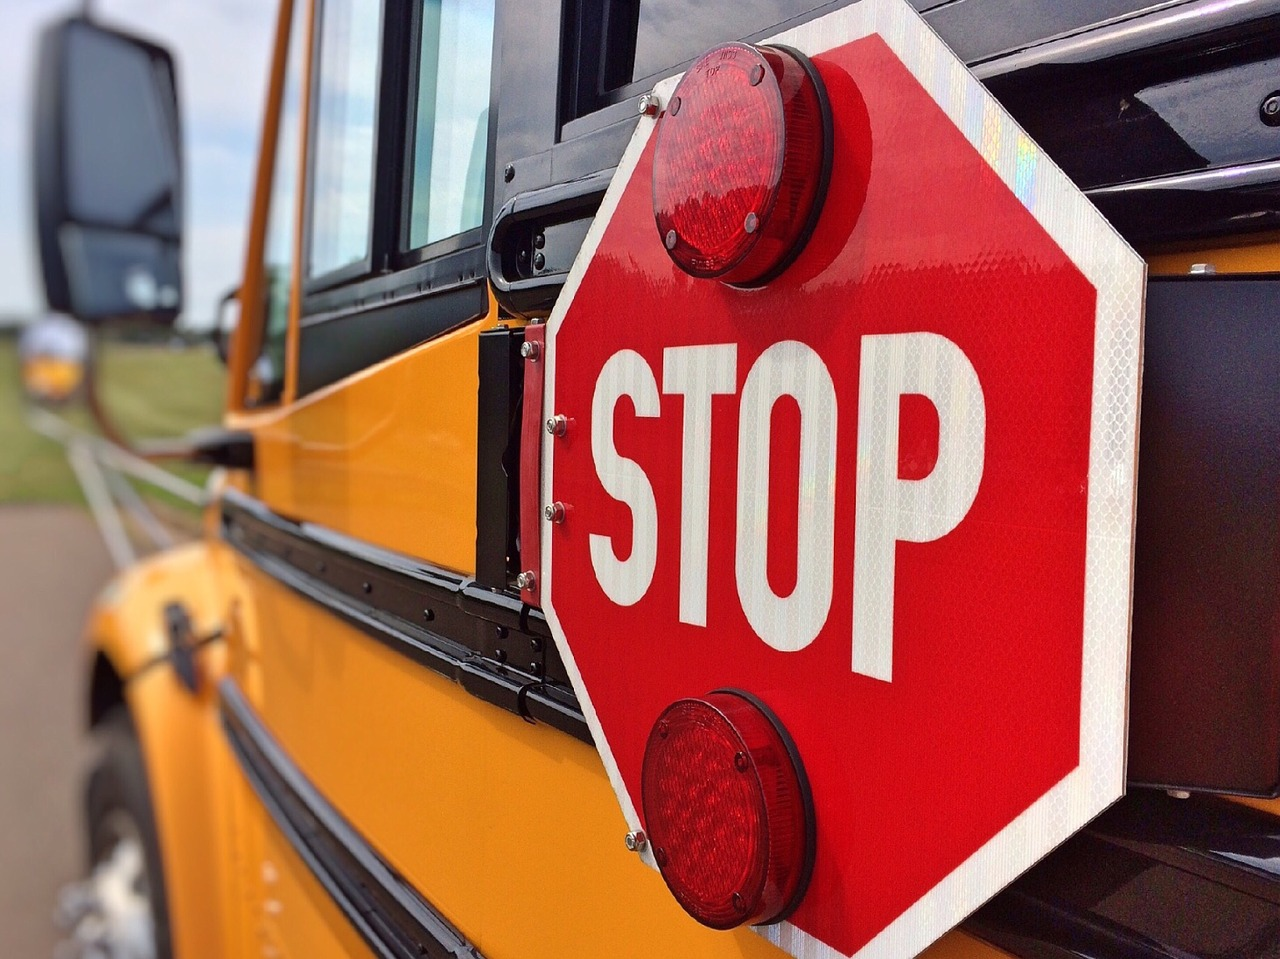 Stop arm on school bus